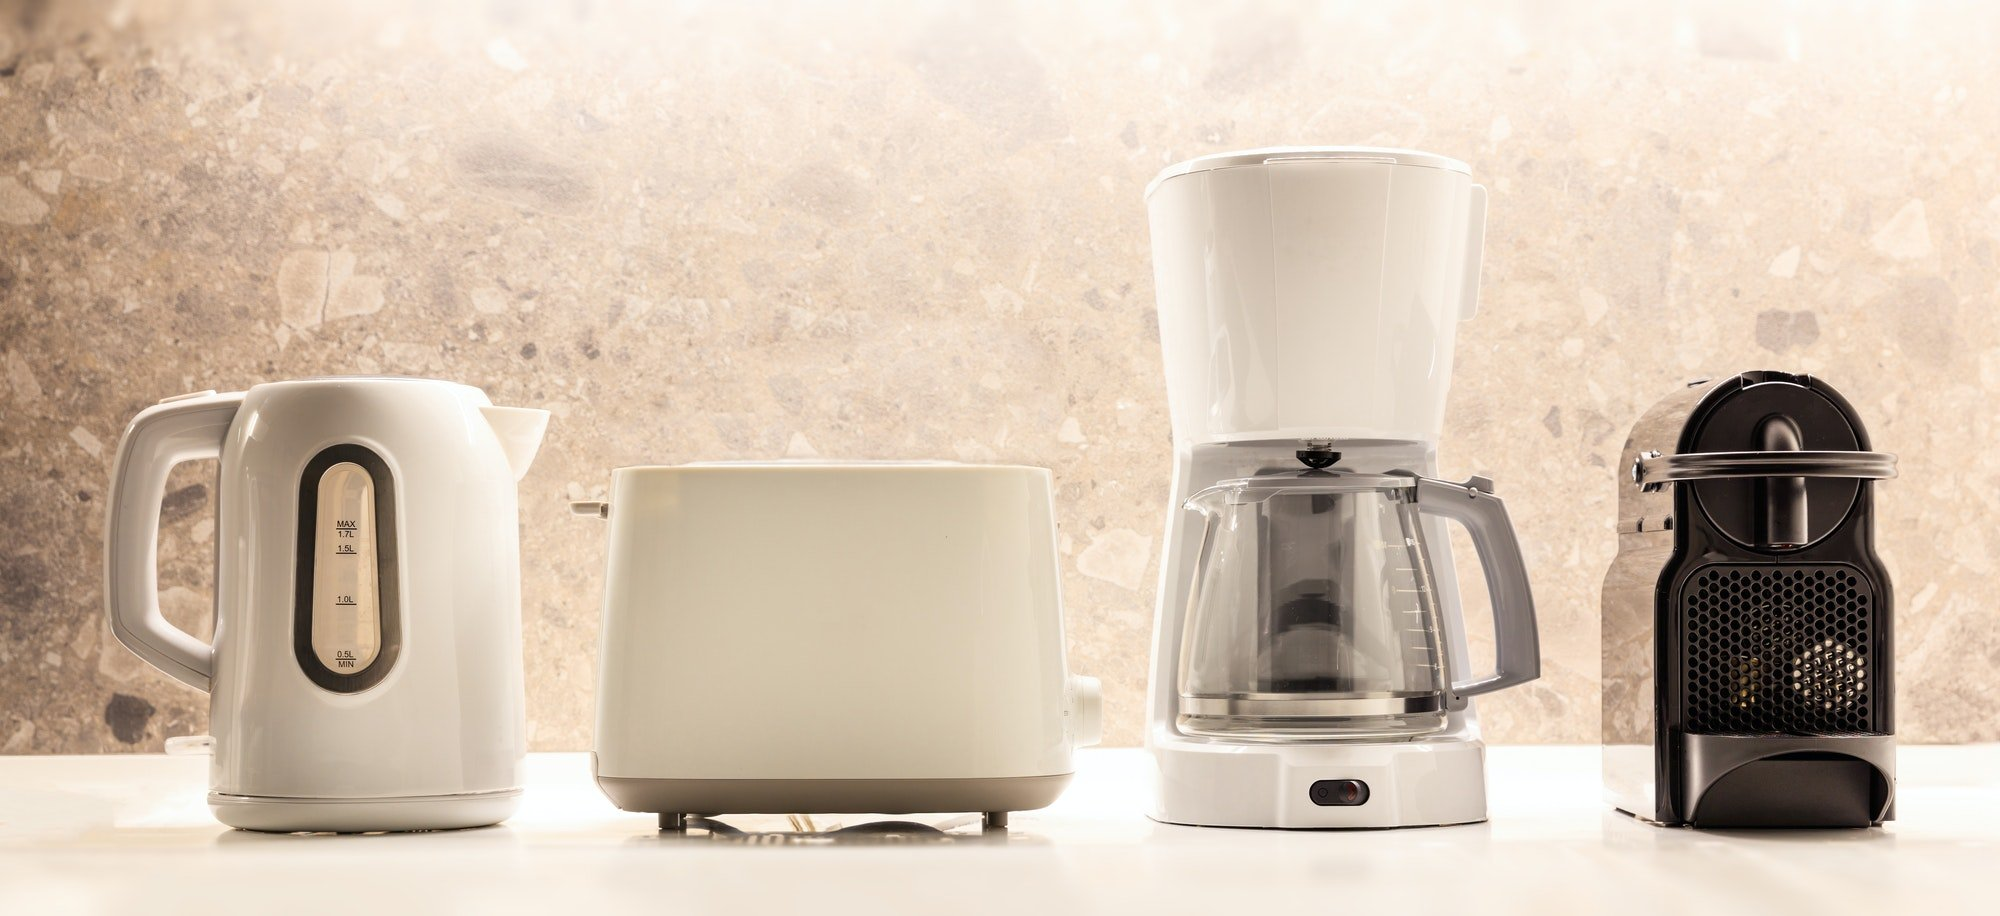 Packing Small Appliances For Moving